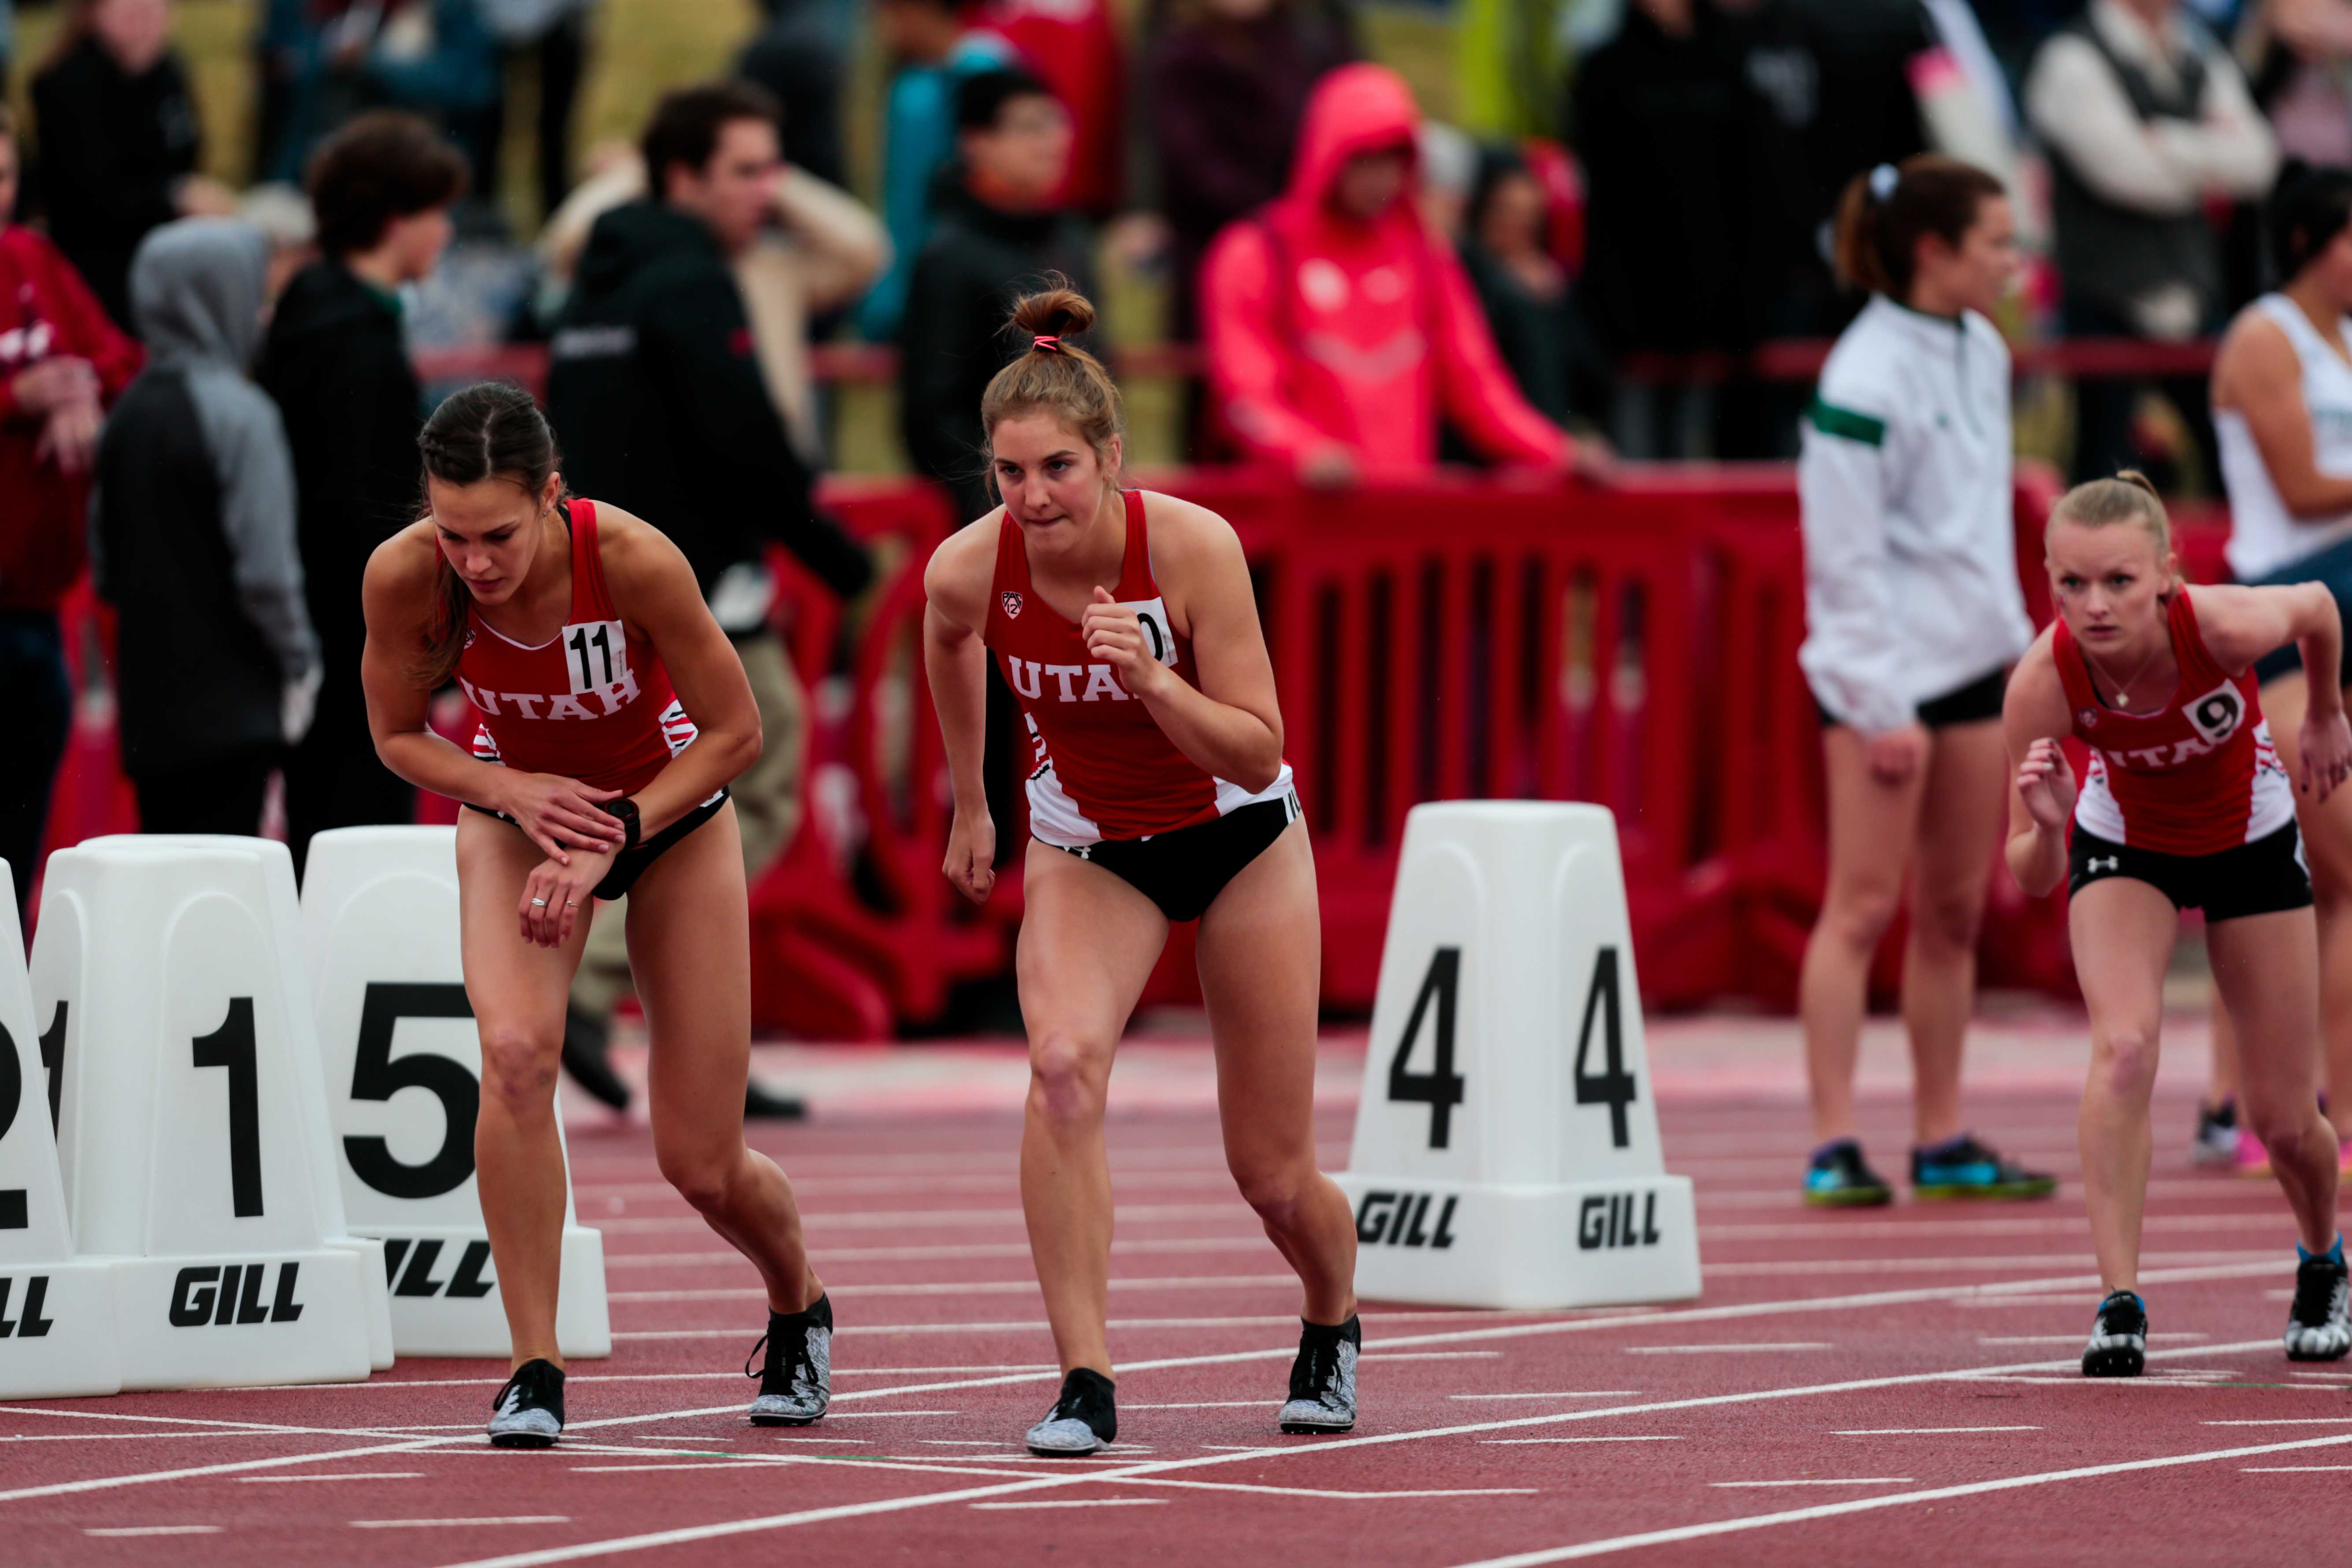 University of Utah sophomore distance runner Nicole Griffiths runs the 800 meter run as The University of Utah and Weber State host the Utah Spring Classic at the McCarthey Family Track and Field Complex in Salt Lake City, UT on Friday April 06, 2018.  (Photo by Curtis Lin/ Daily Utah Chronicle)